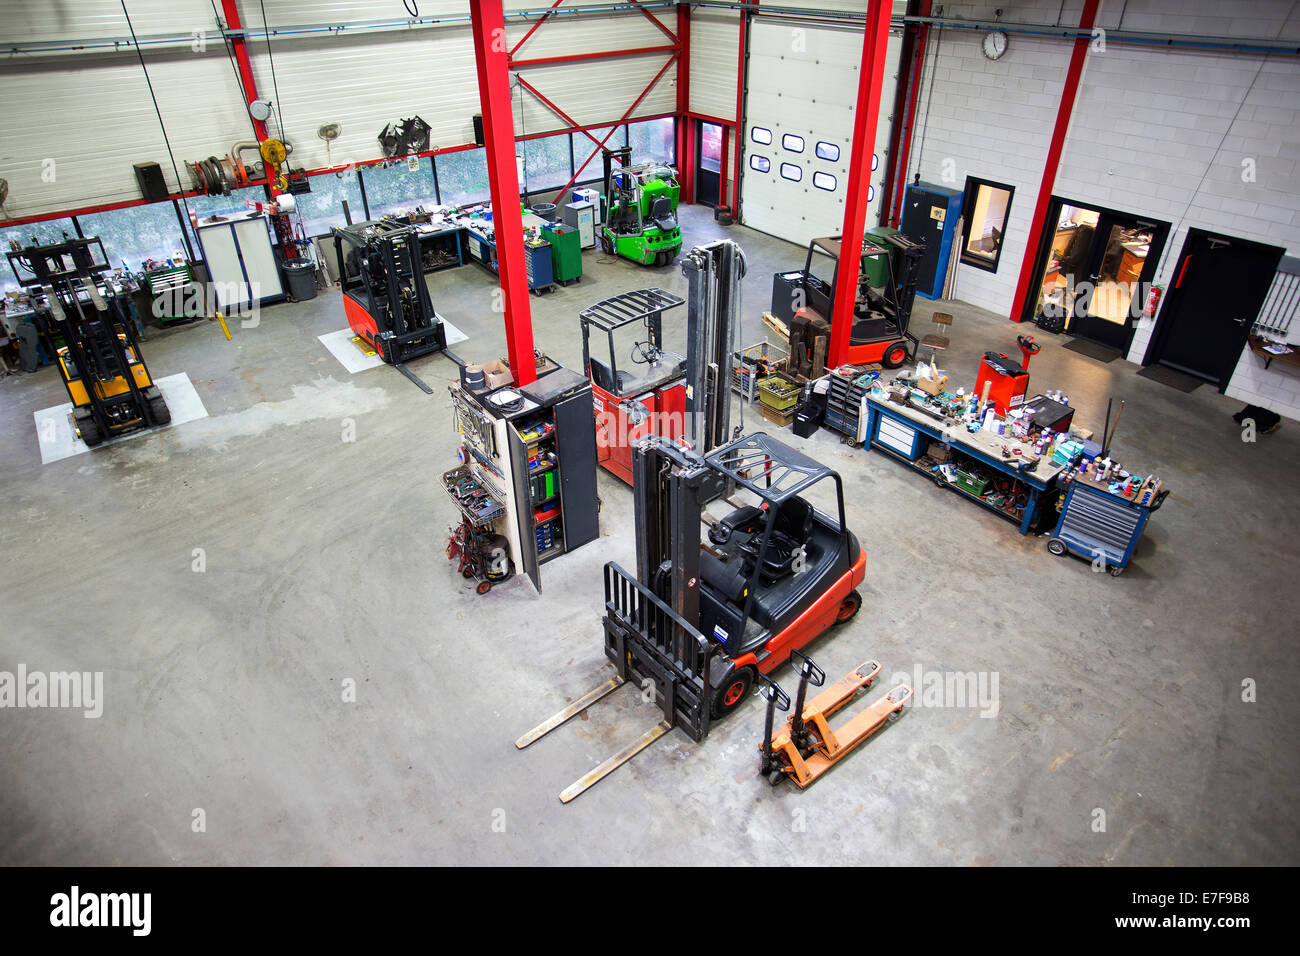 Overhead view of machinery in warehouse office - Stock Image